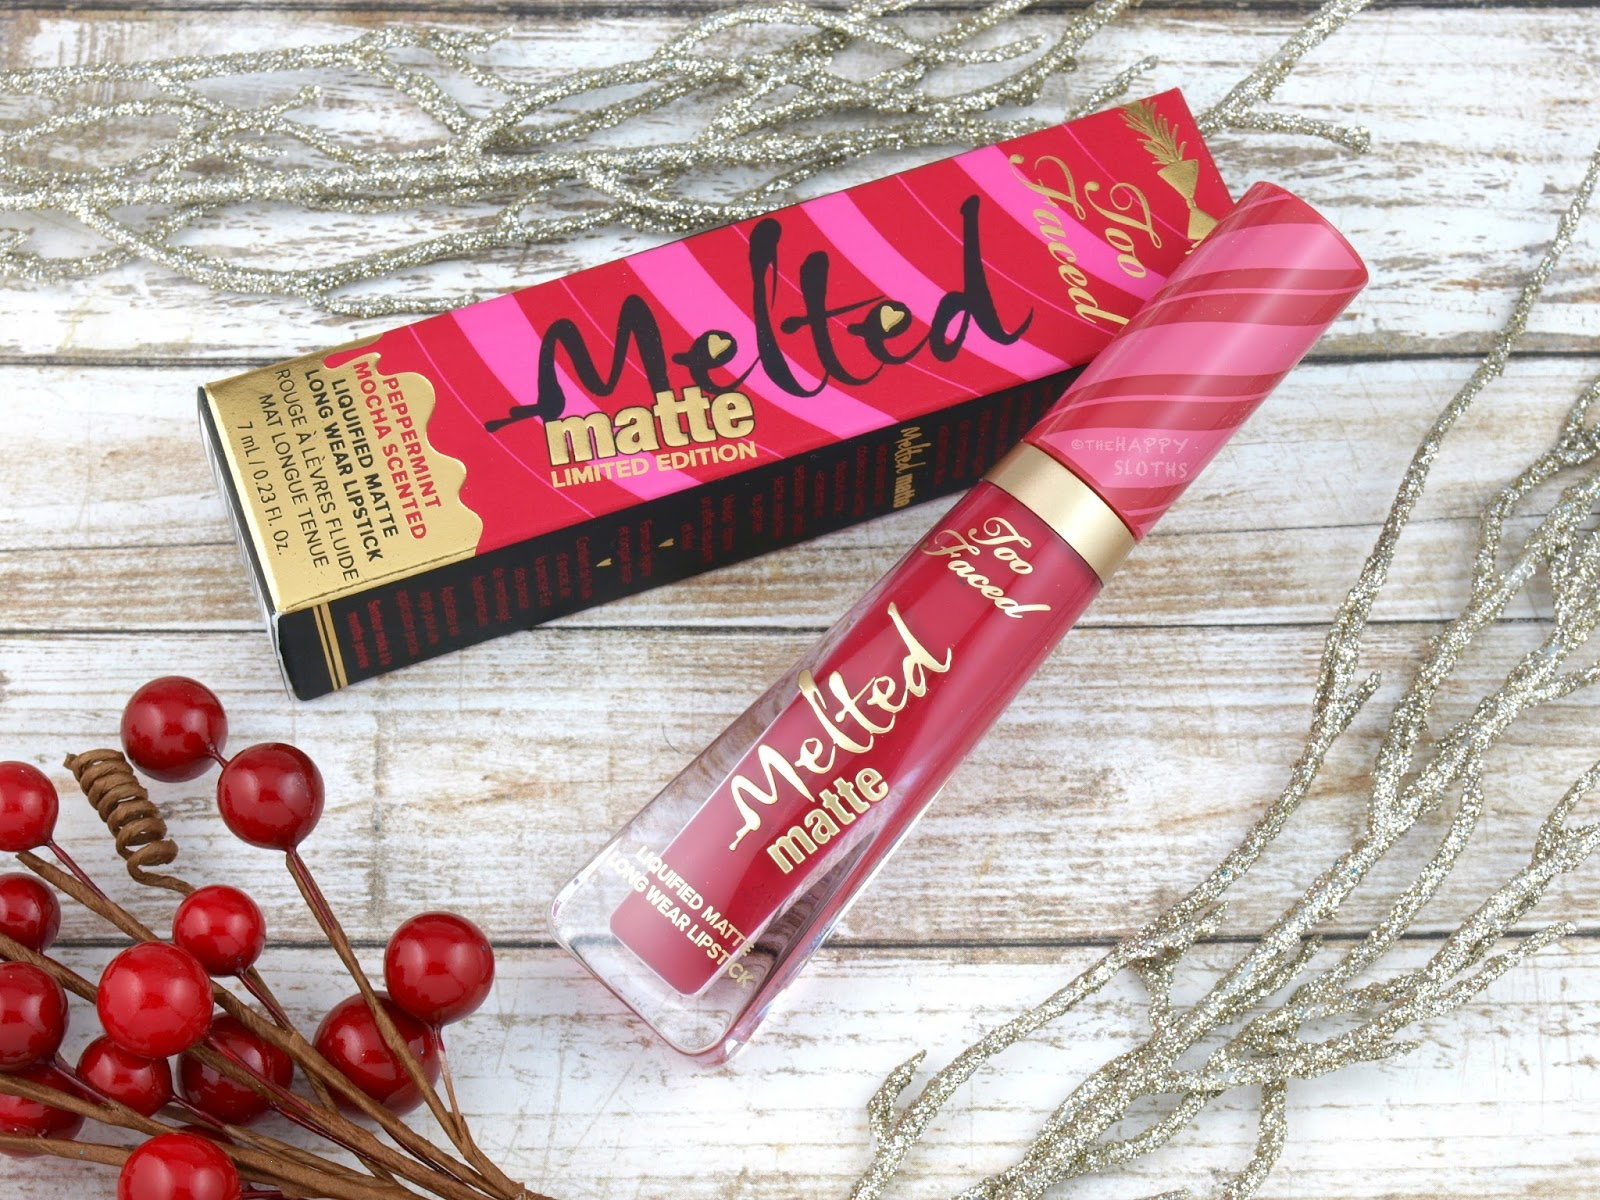 Too Faced Melted Matte Liquified Long Wear Matte Lipstick in Candy Cane